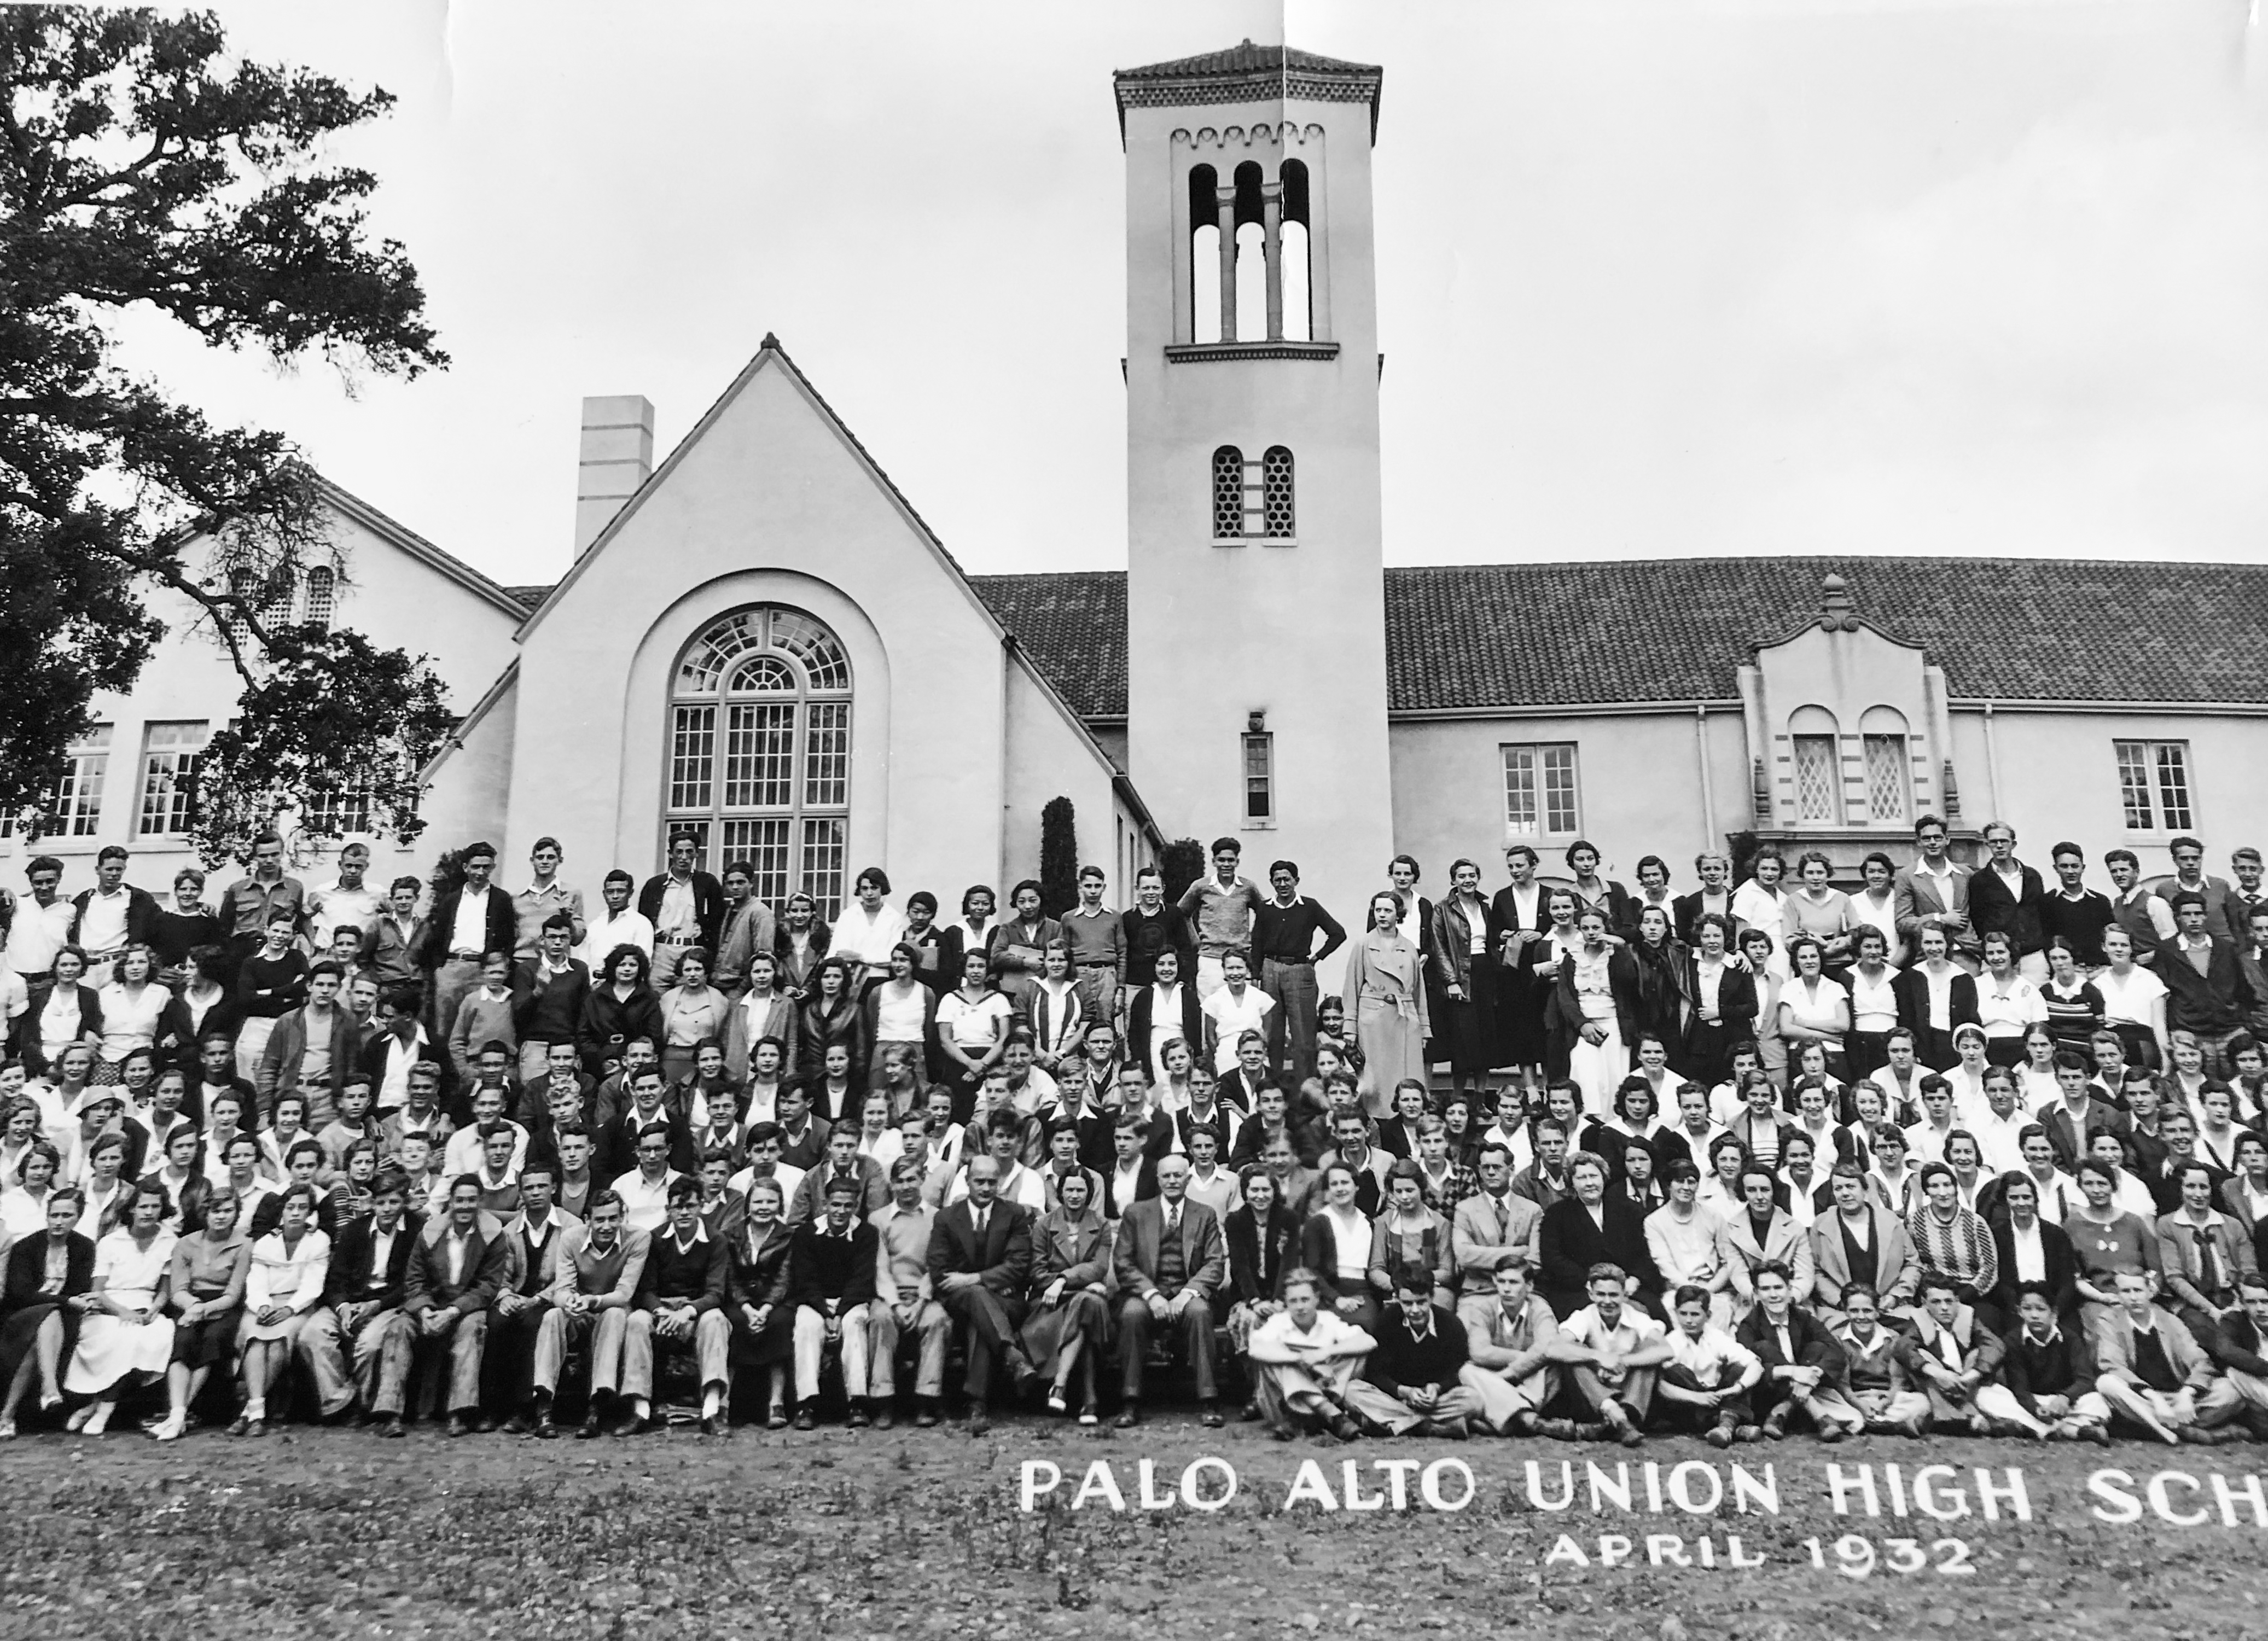 Palo Alto Union High School students pose for a photo outside Campanile Tower in April 1932. Photo courtesy of Alan Nichols.